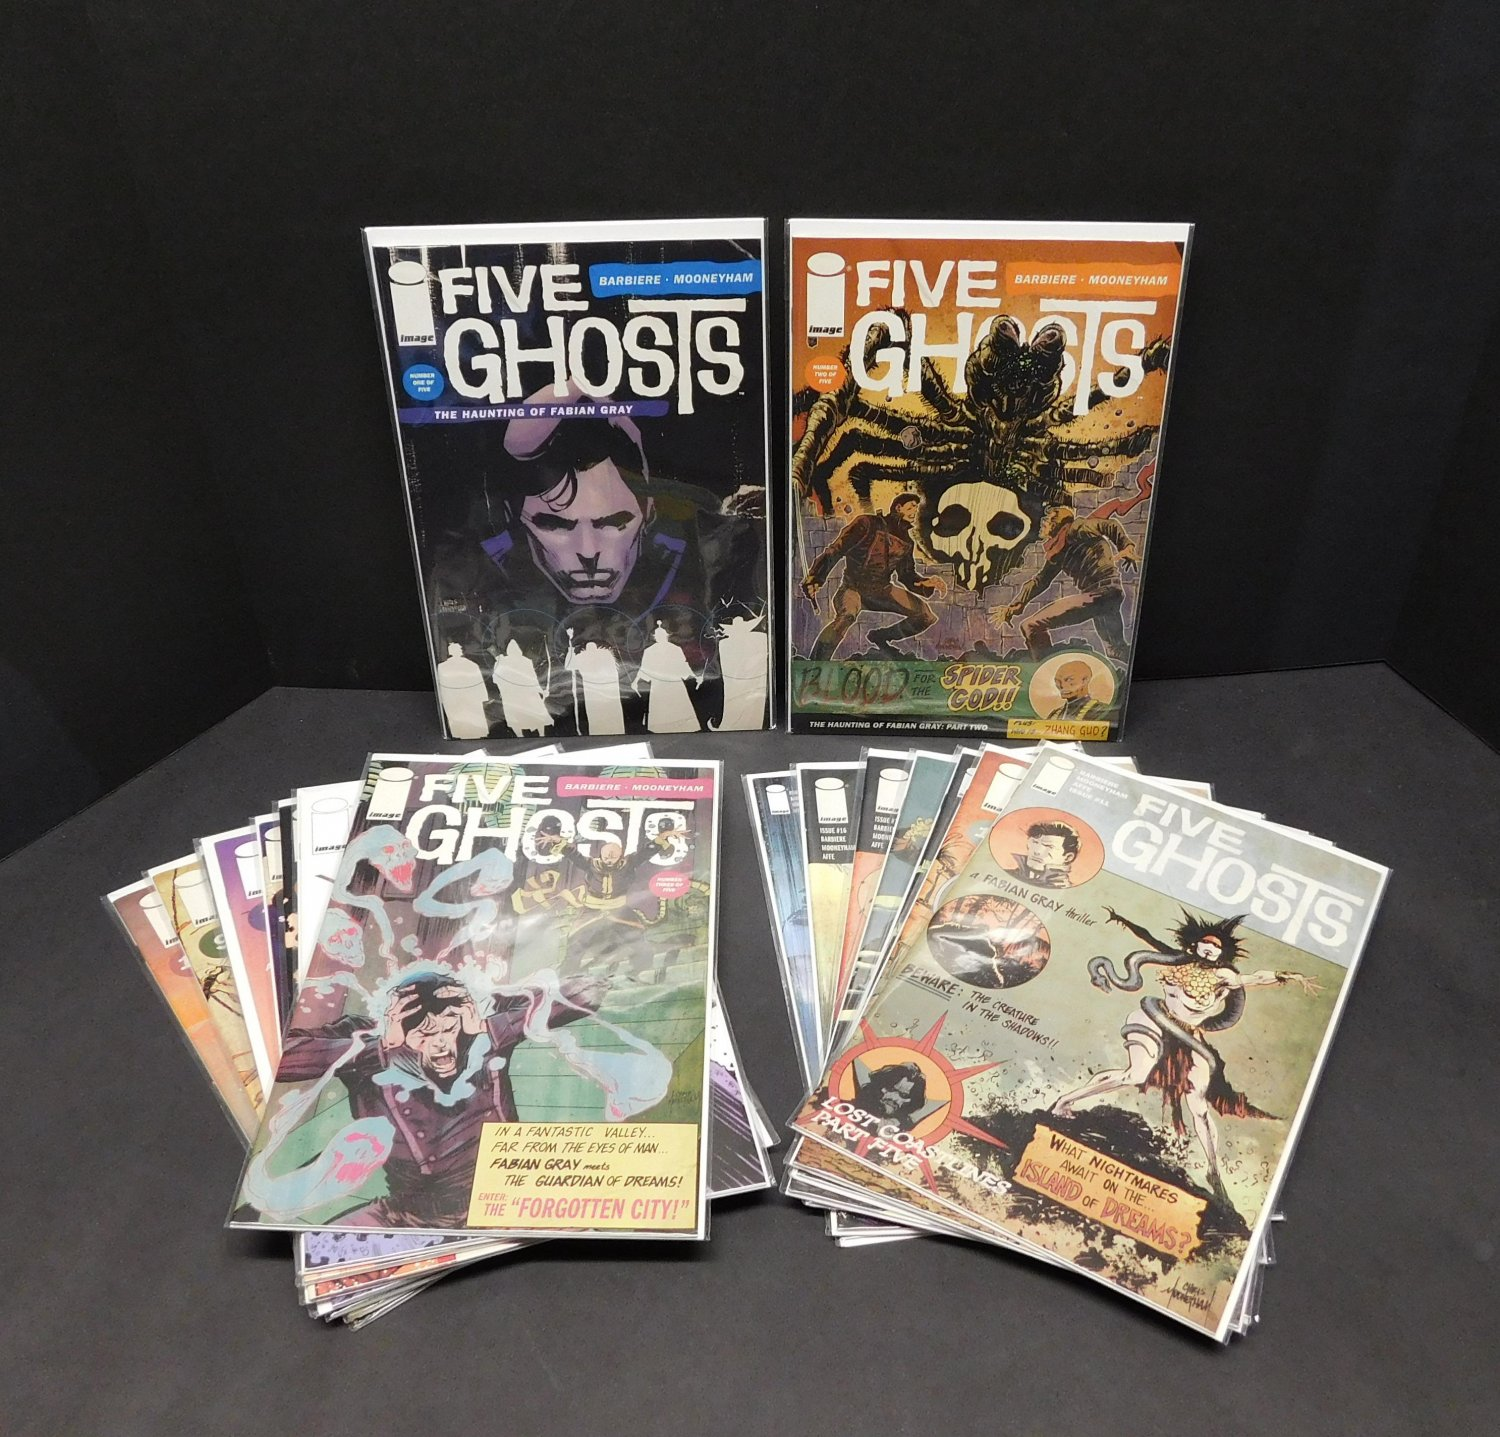 FIVE GHOSTS 2015 Complete Image Comic Book Set/Lot/Run #1 2 3 4 5 6 7 8 9 10 11 12 13 14-17